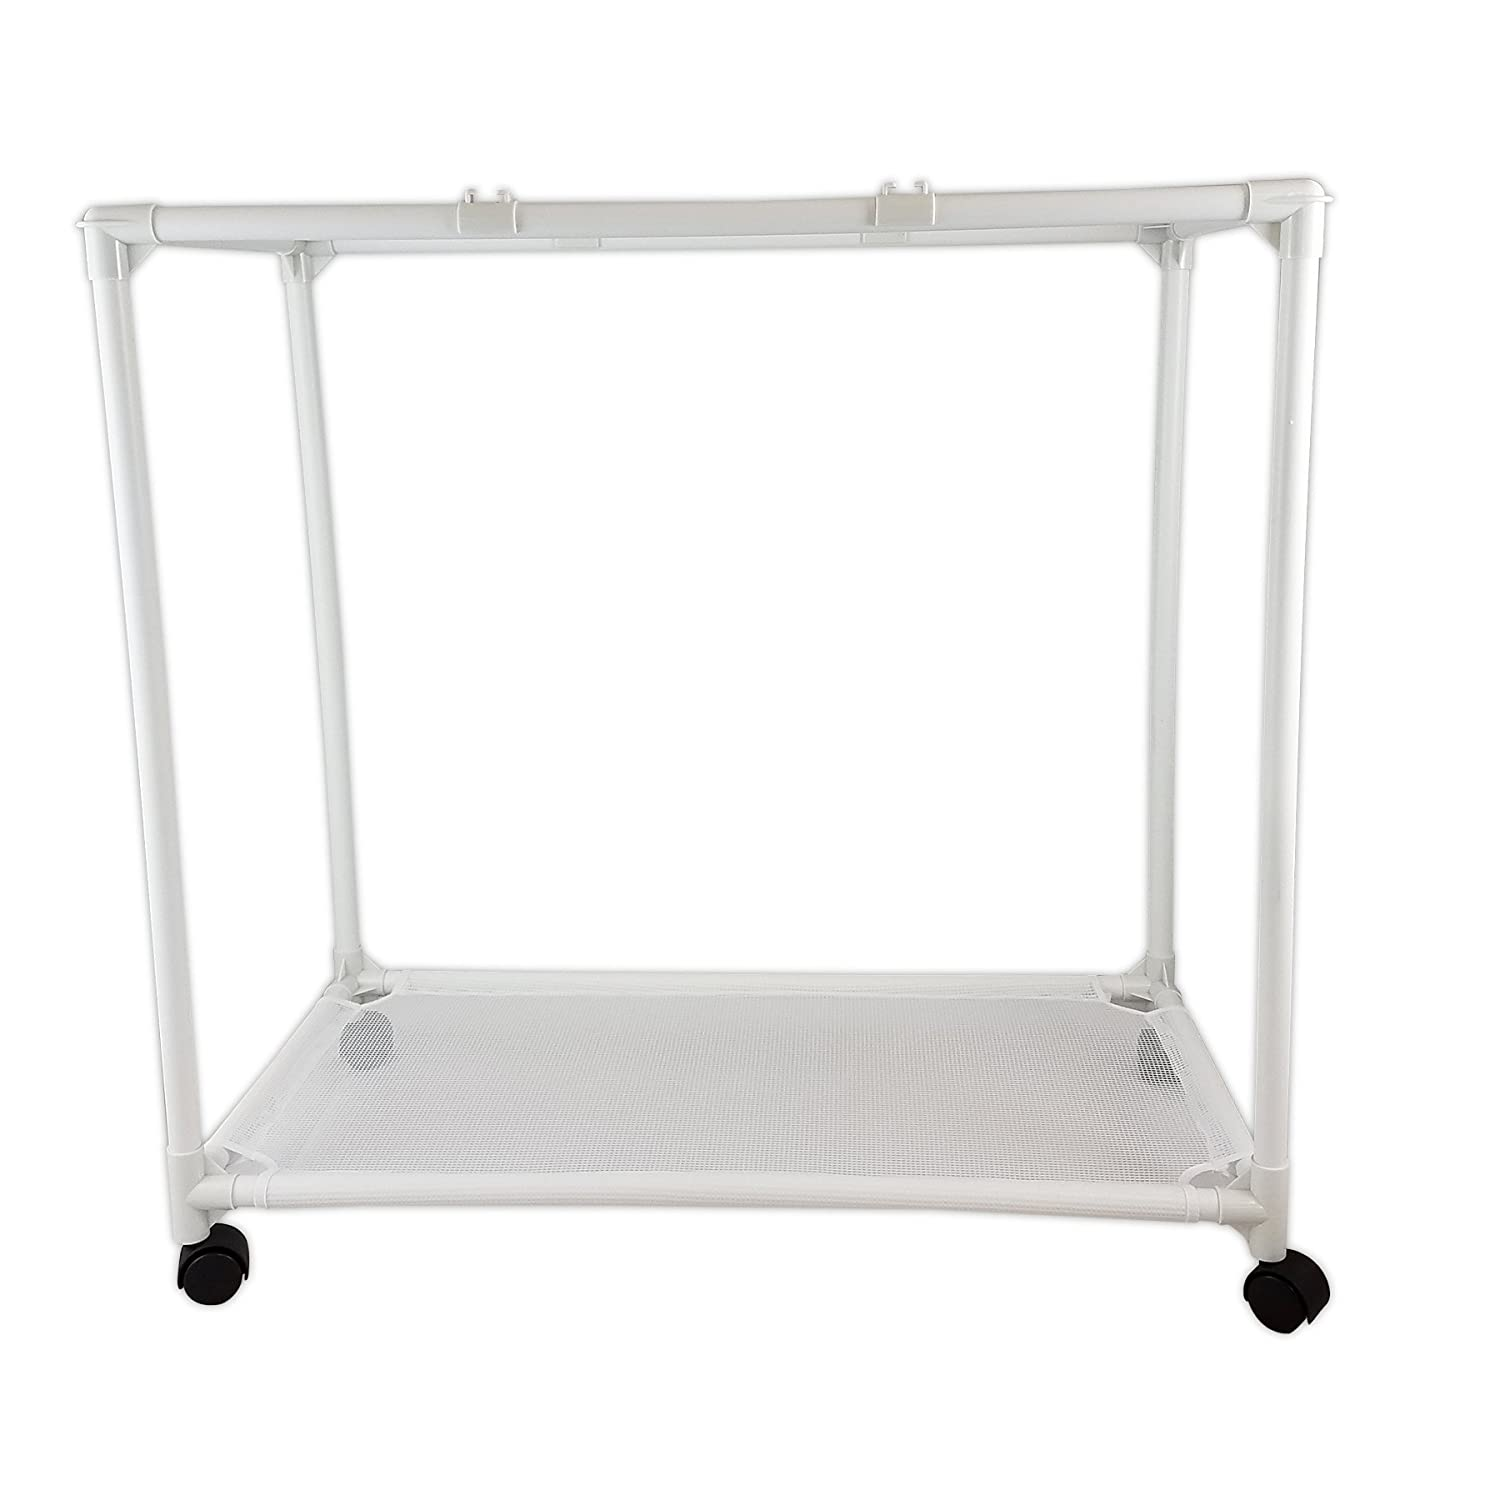 Amazon.com: Homz Triple Clothing Sorter with Wheels, 3 Removable ...